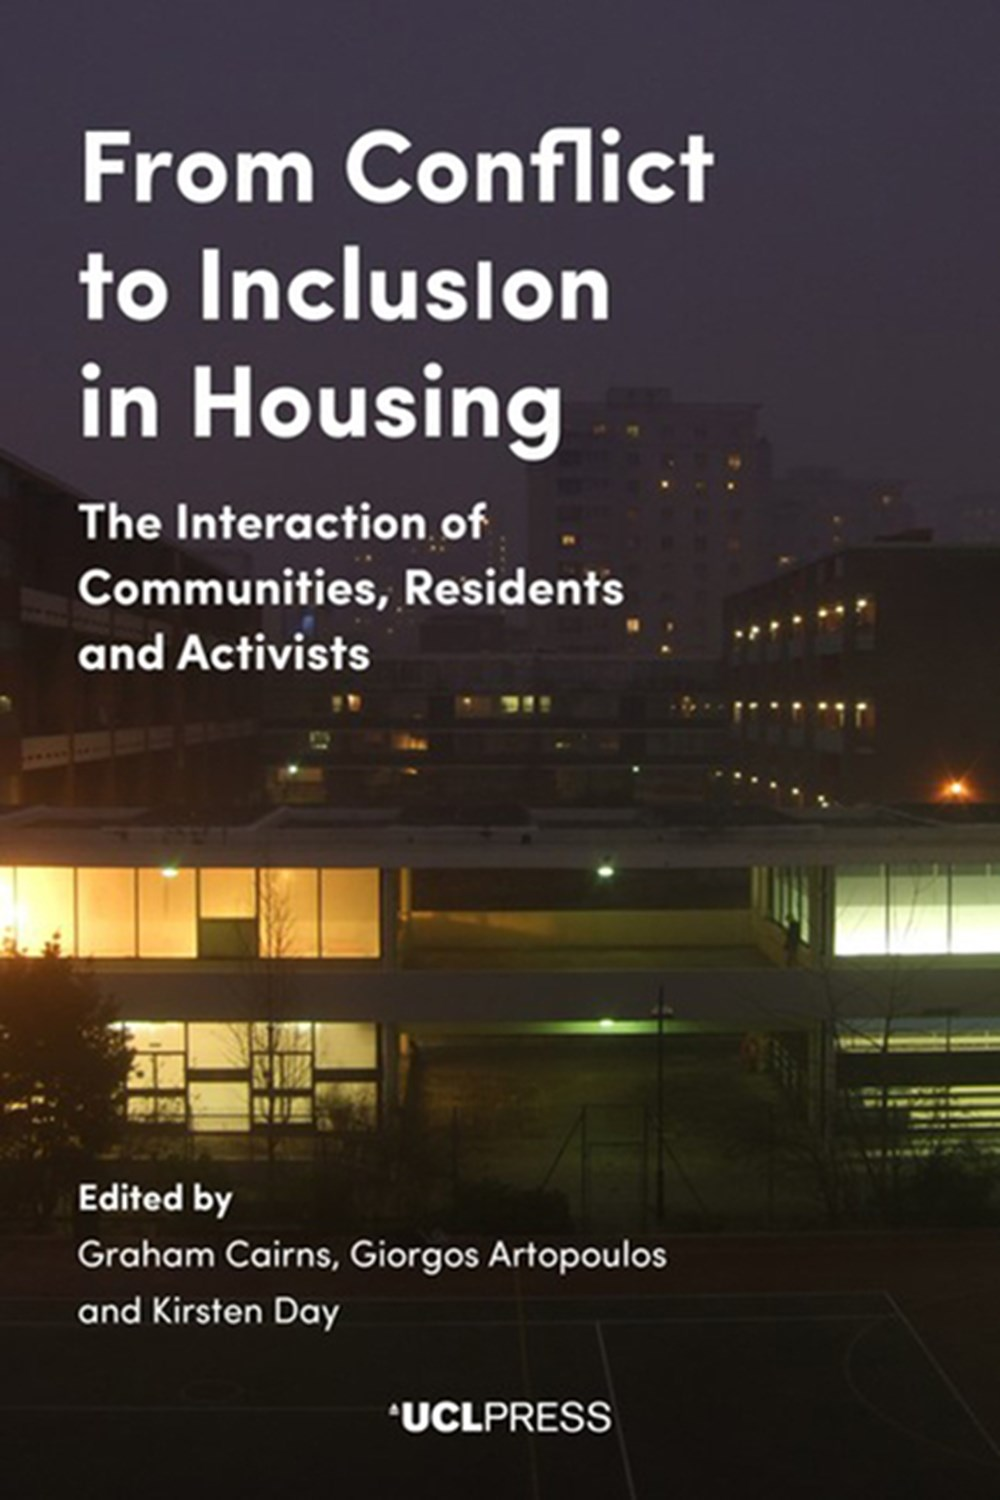 From Conflict to Inclusion in Housing Interaction of Communities, Residents and Activists